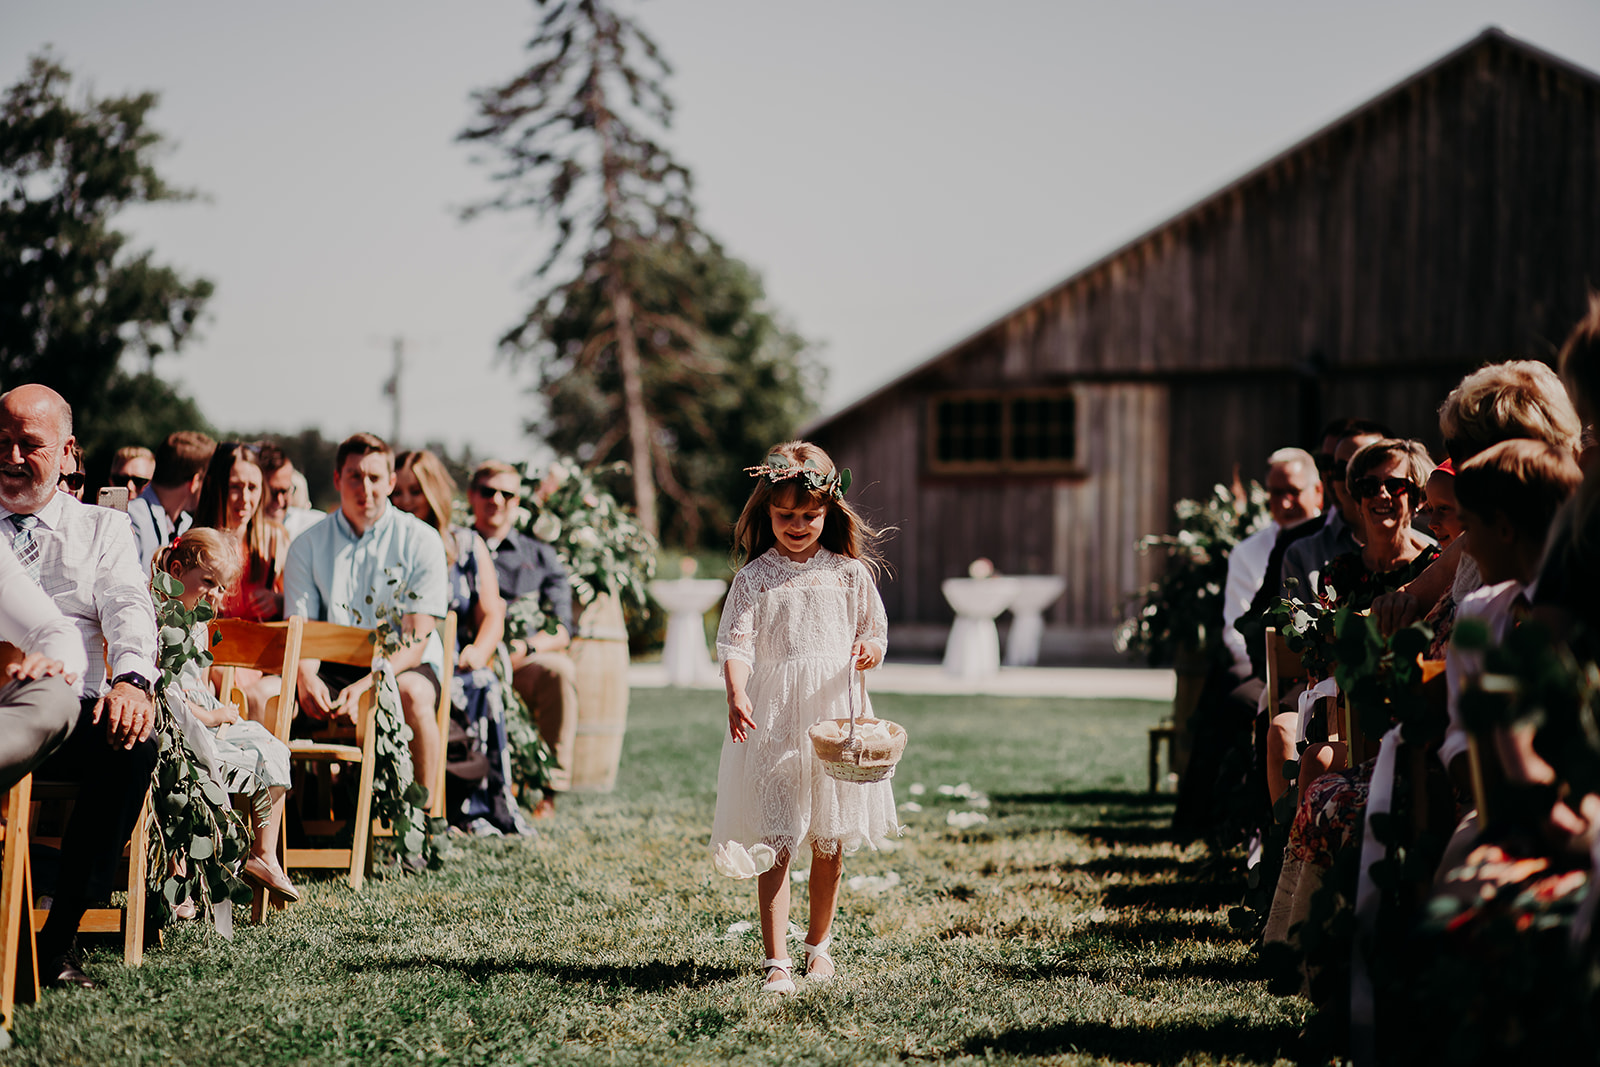 mount-vernon-wedding-salt-box-barn-amanda-riley-megan-gallagher-photography-1_(55_of_351).jpg